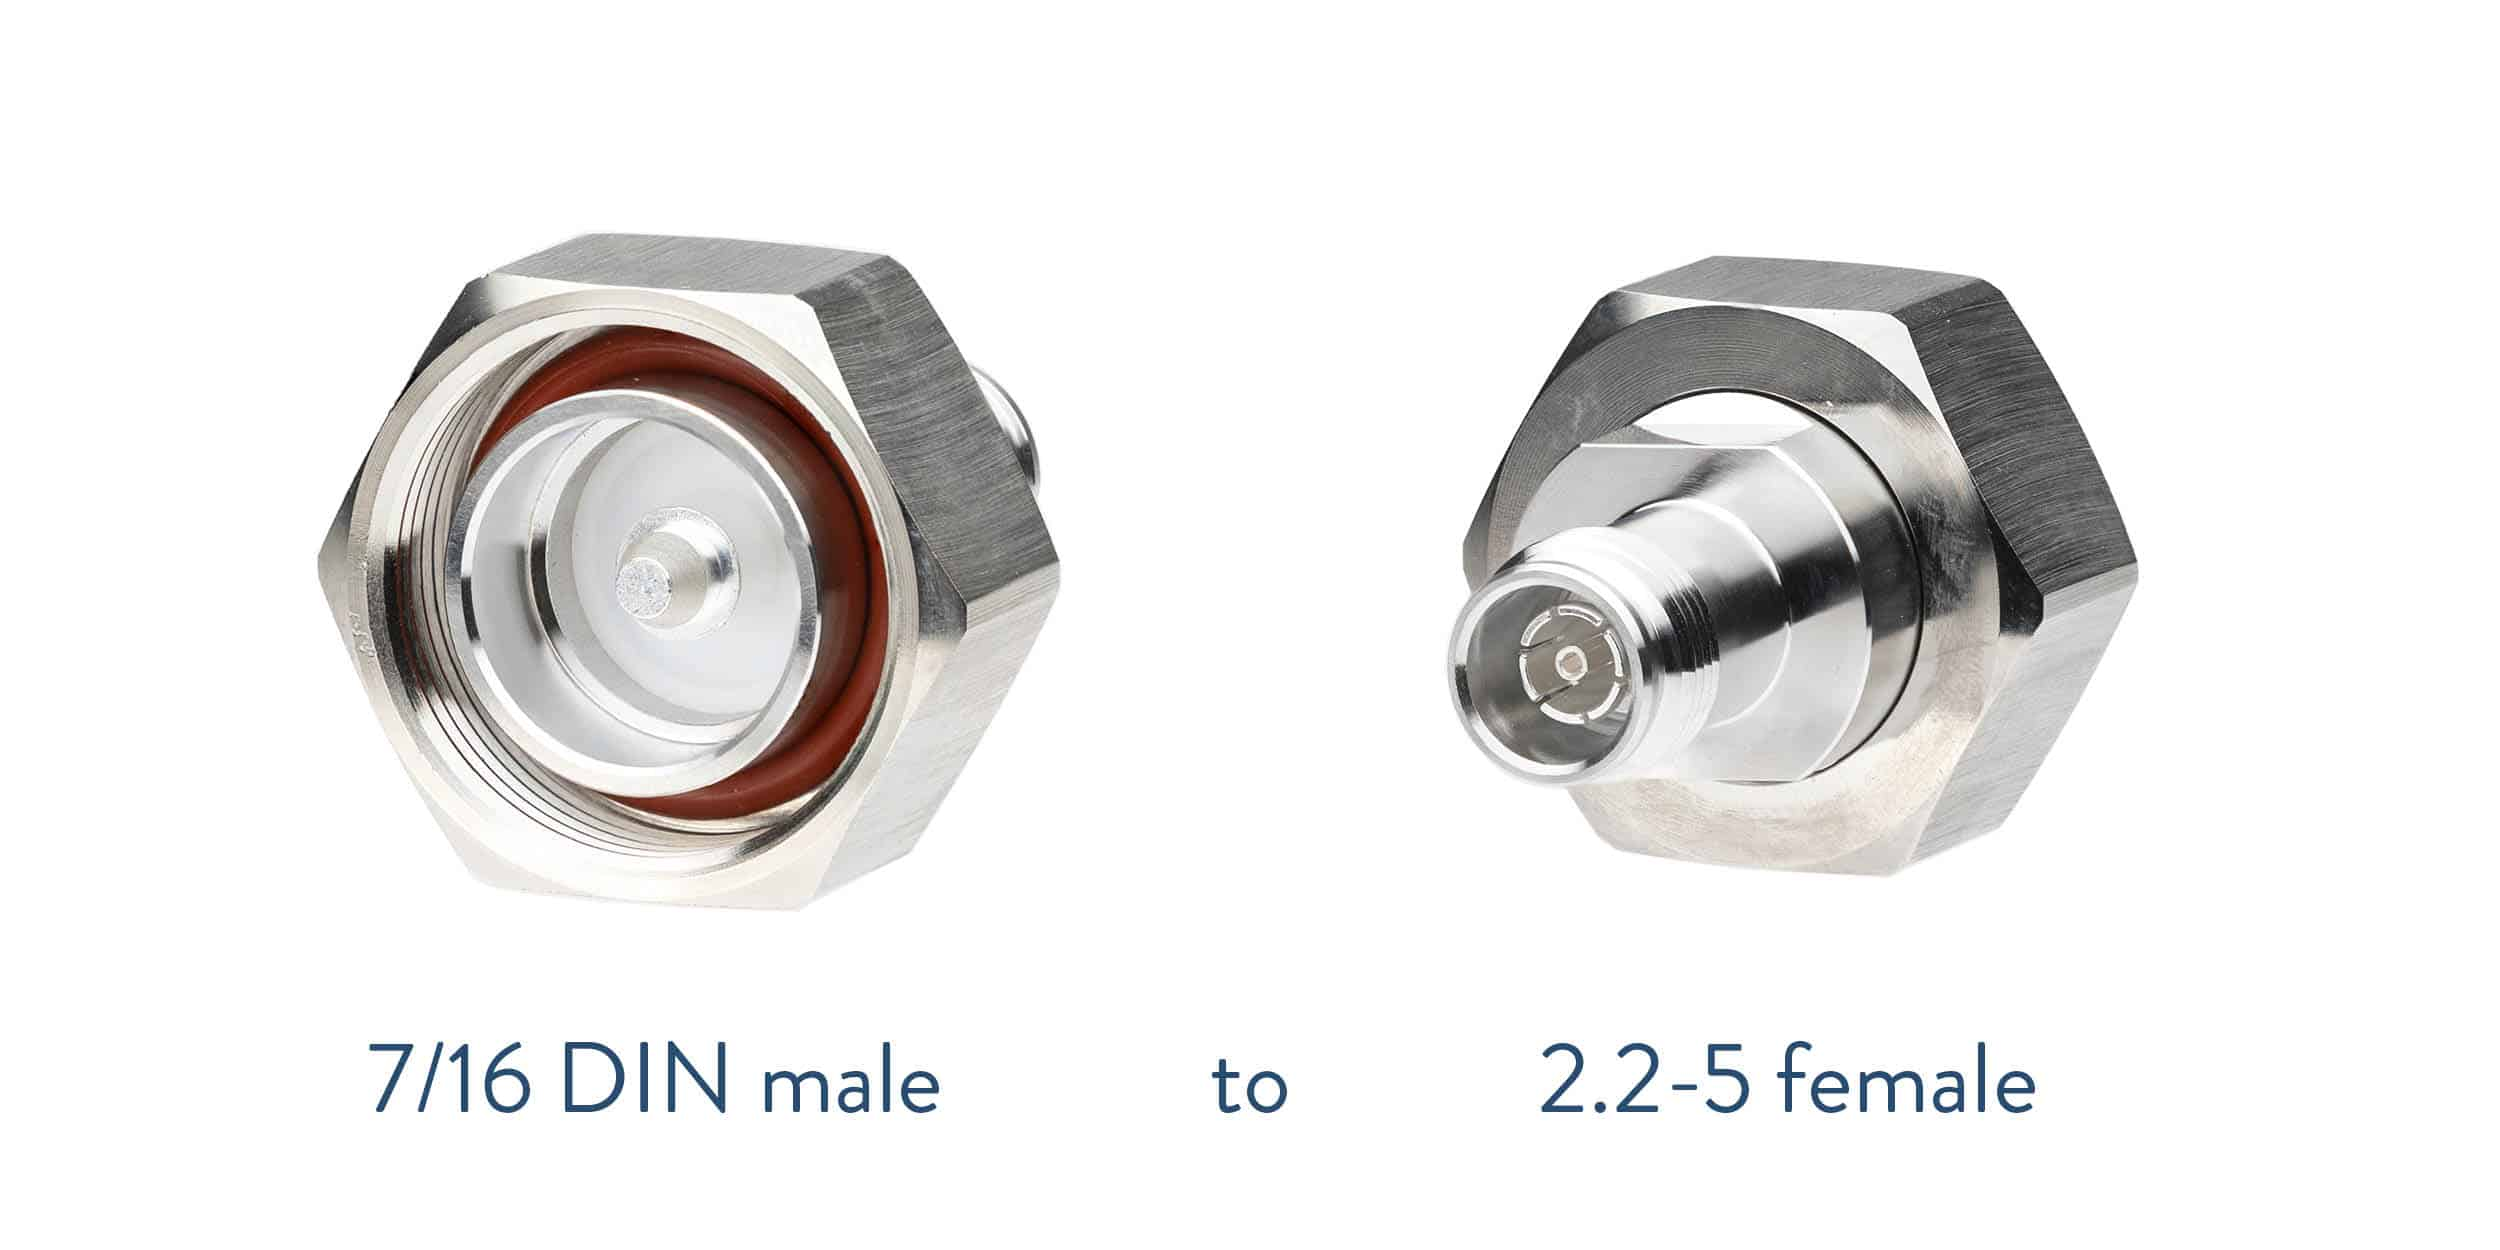 7/16 DIN to 2.2-5 adapter